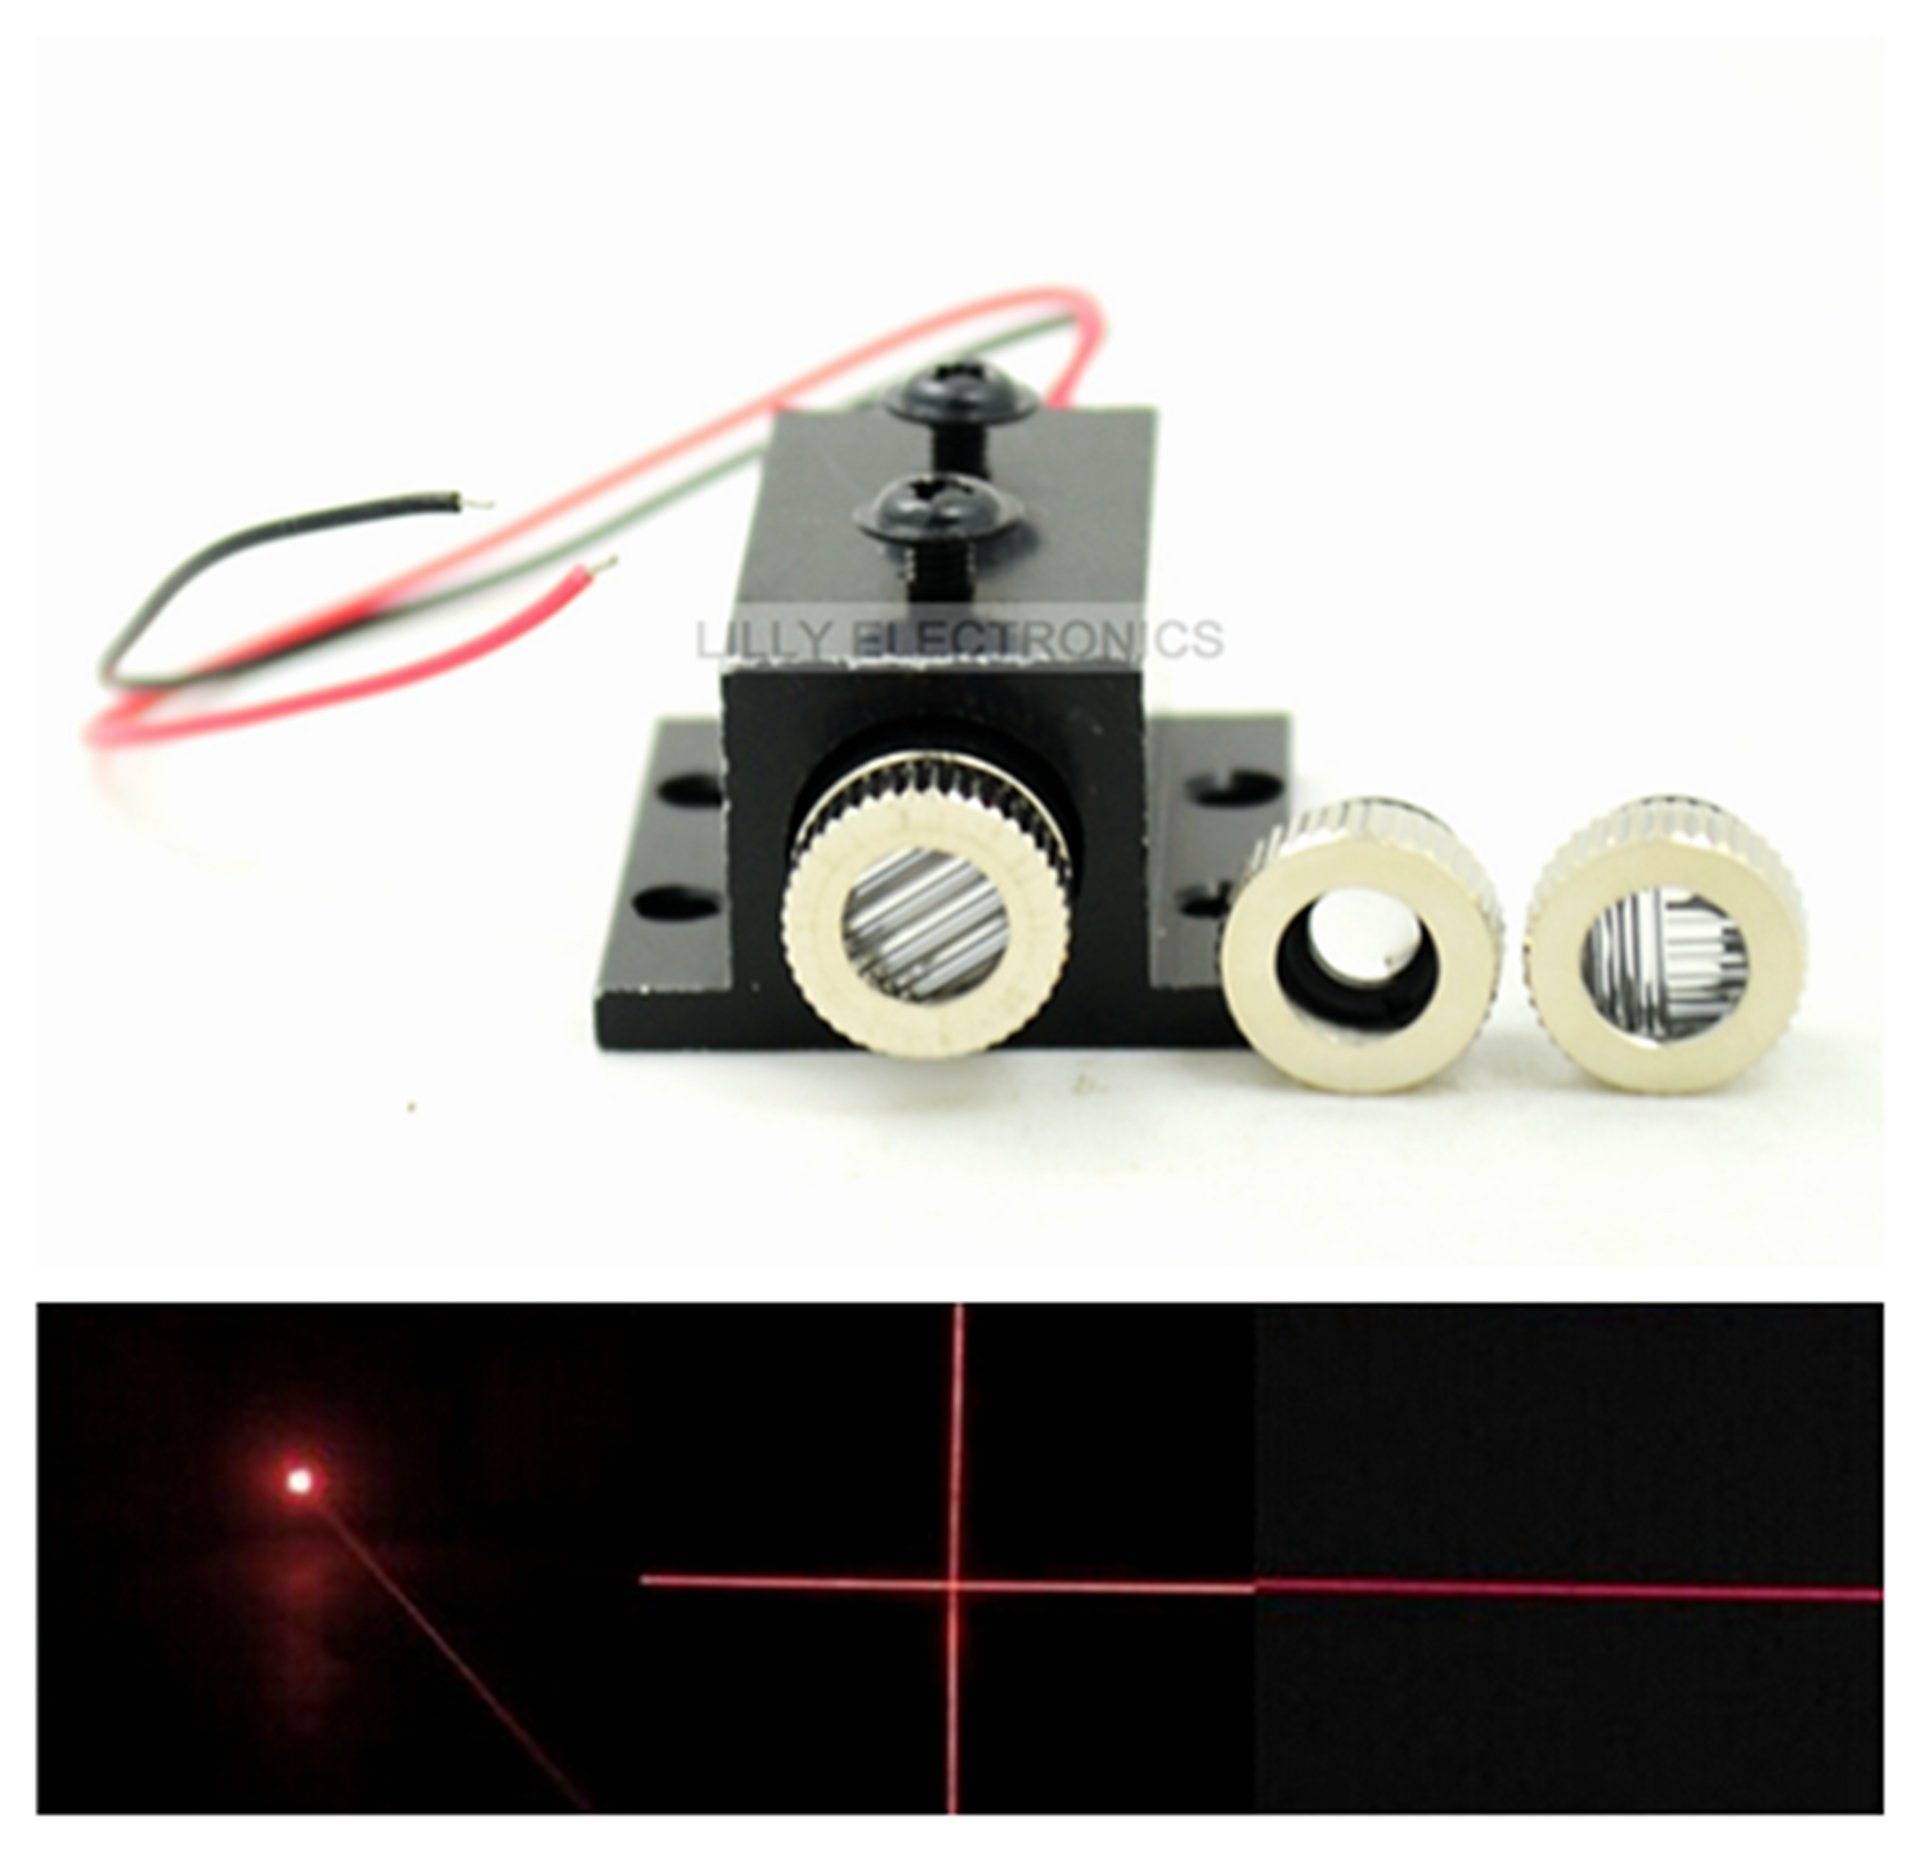 Adjusted Red Diode Lasers 650nm 30mw Dot/Line/Cross LED Module w/Heatsink & Driver In